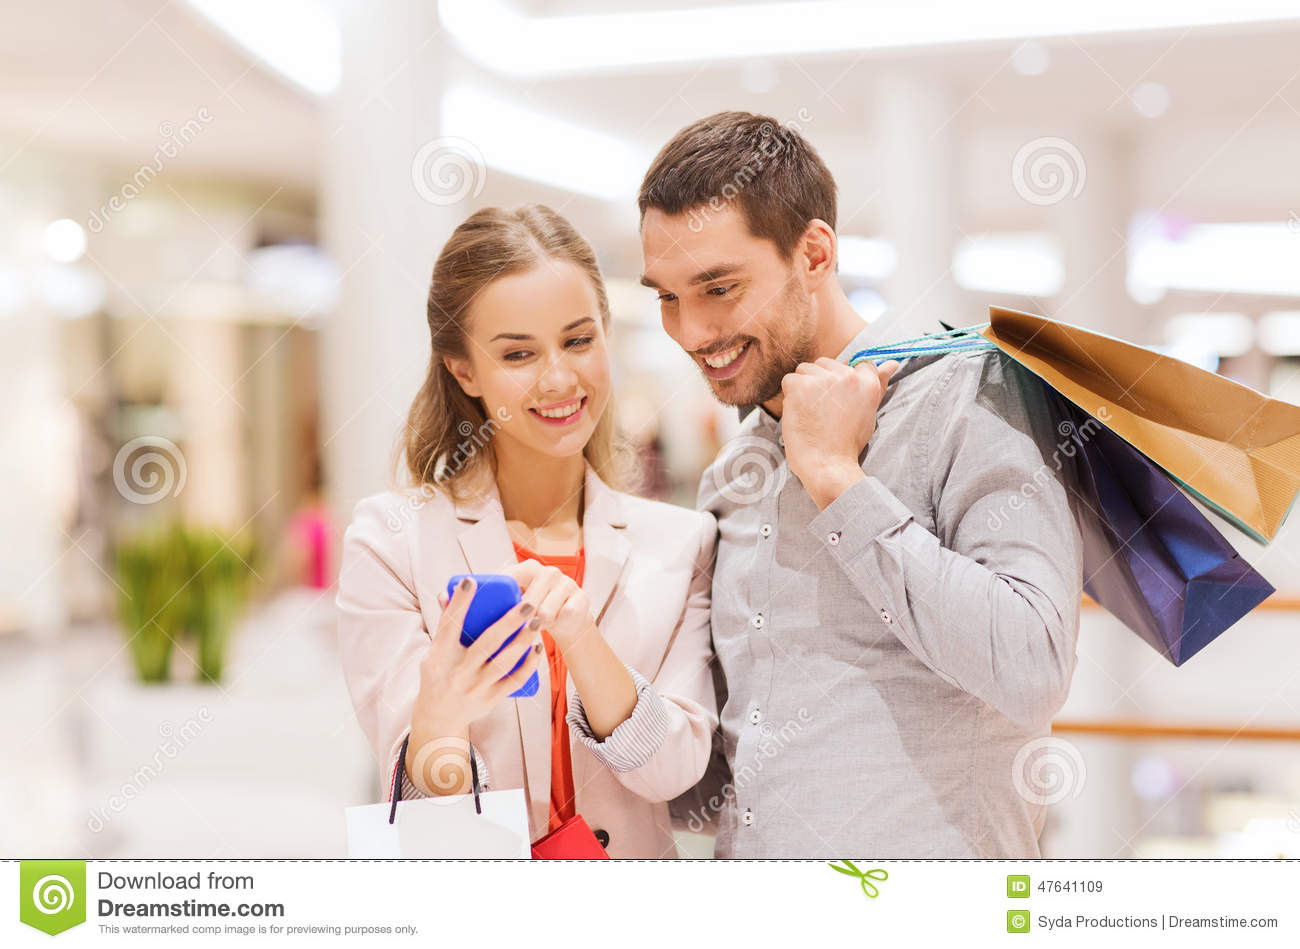 couple-smartphone-shopping-bags-mall-sale-consumerism-technology-people-concept-happy-young-talking-47641109.jpg